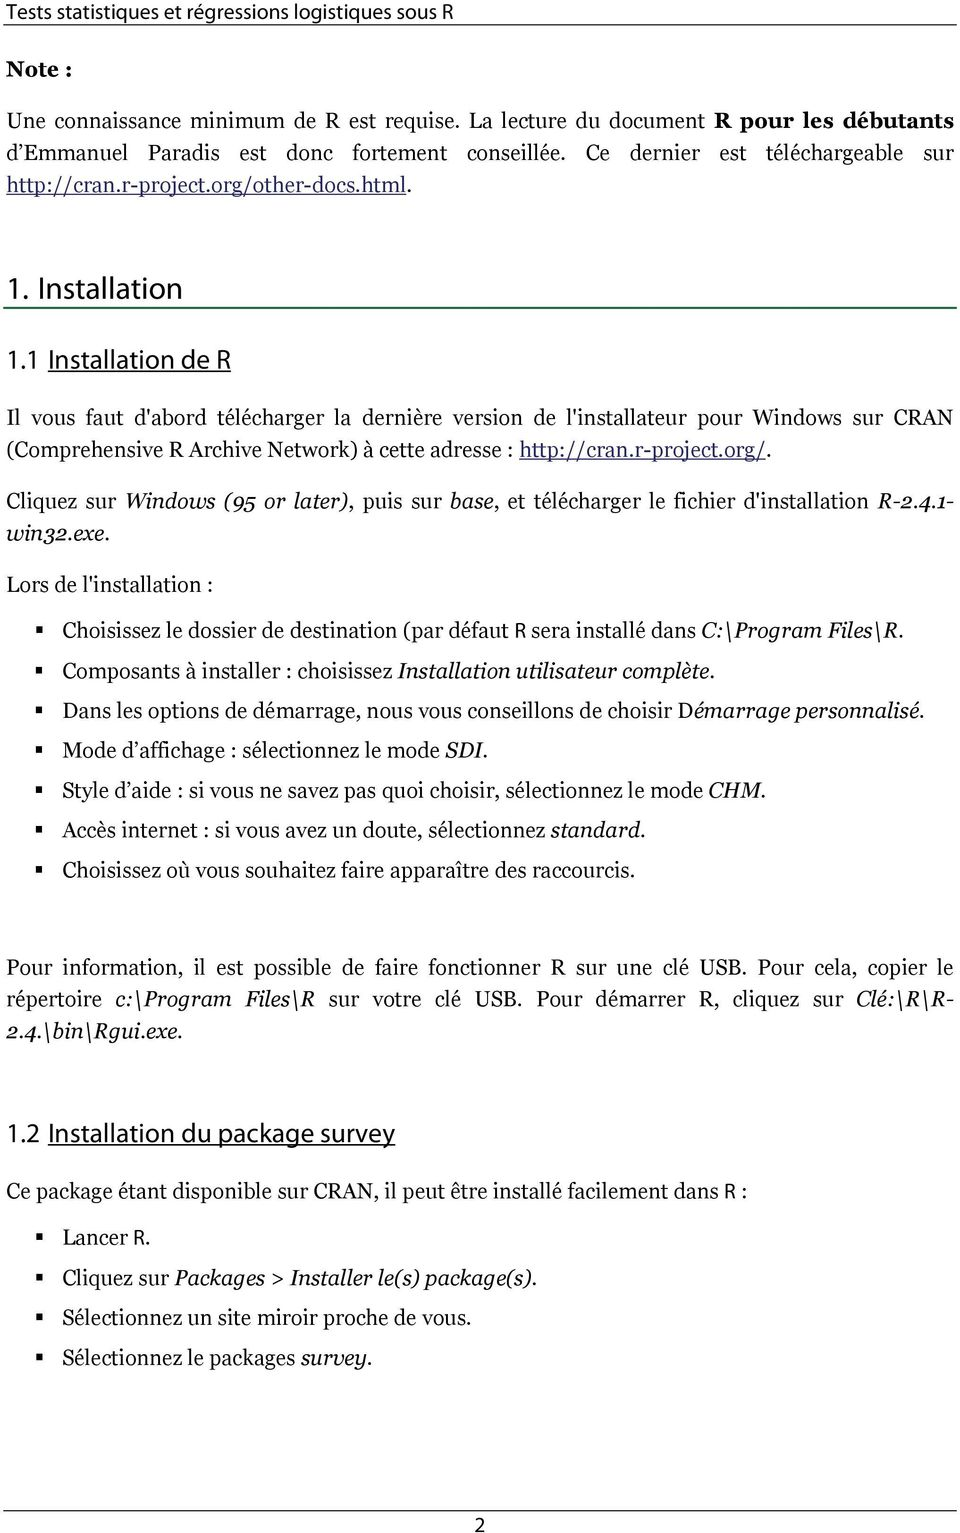 1 Installation de R Il vous faut d'abord télécharger la dernière version de l'installateur pour Windows sur CRAN (Comprehensive R Archive Network) à cette adresse : http://cran.r-project.org/.